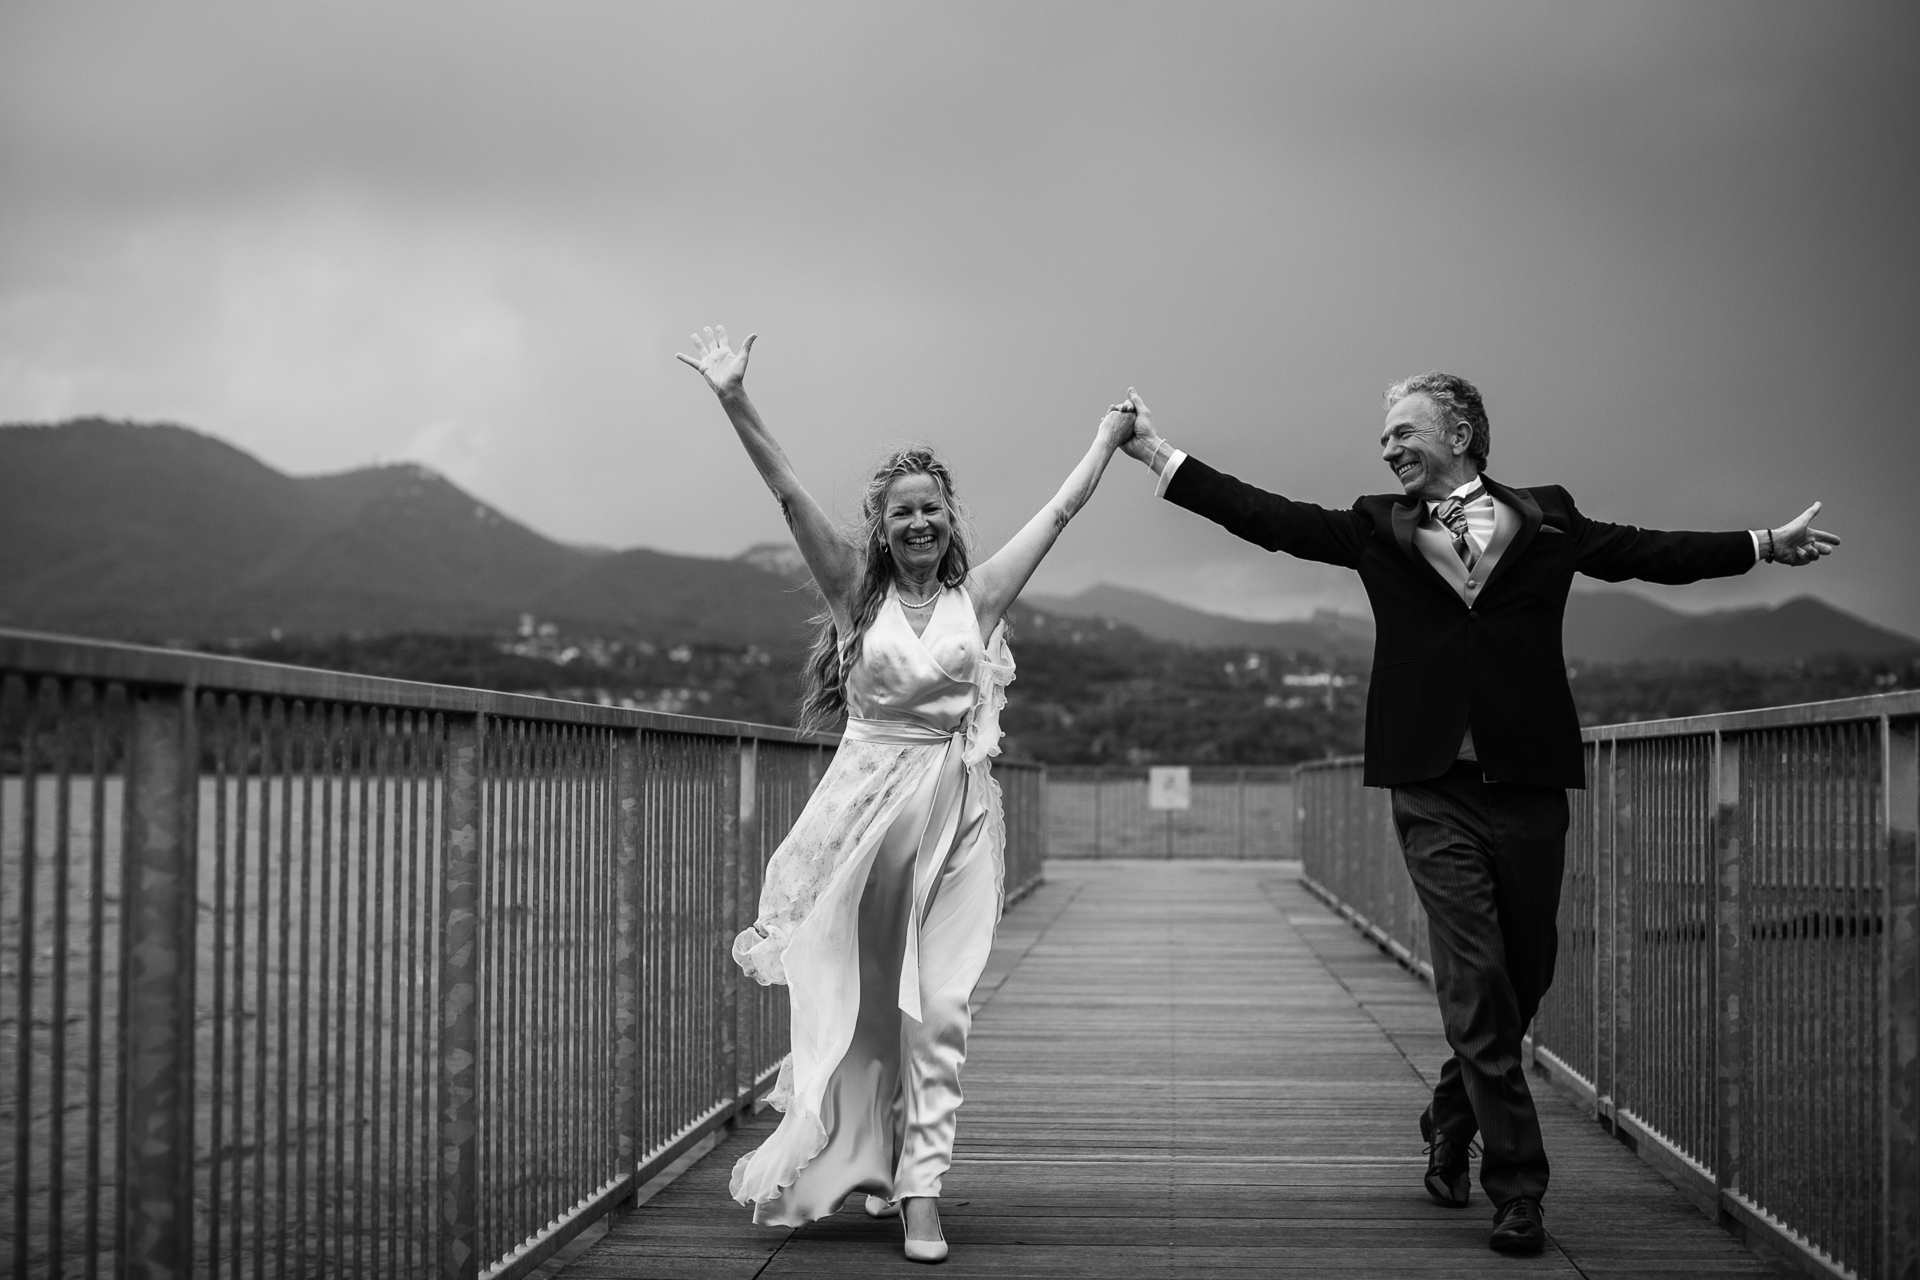 Italy Elopement Couple Portrait of the Bride and Groom at Lake Varese | The newlyweds have a bit of fun as they walk down a dock